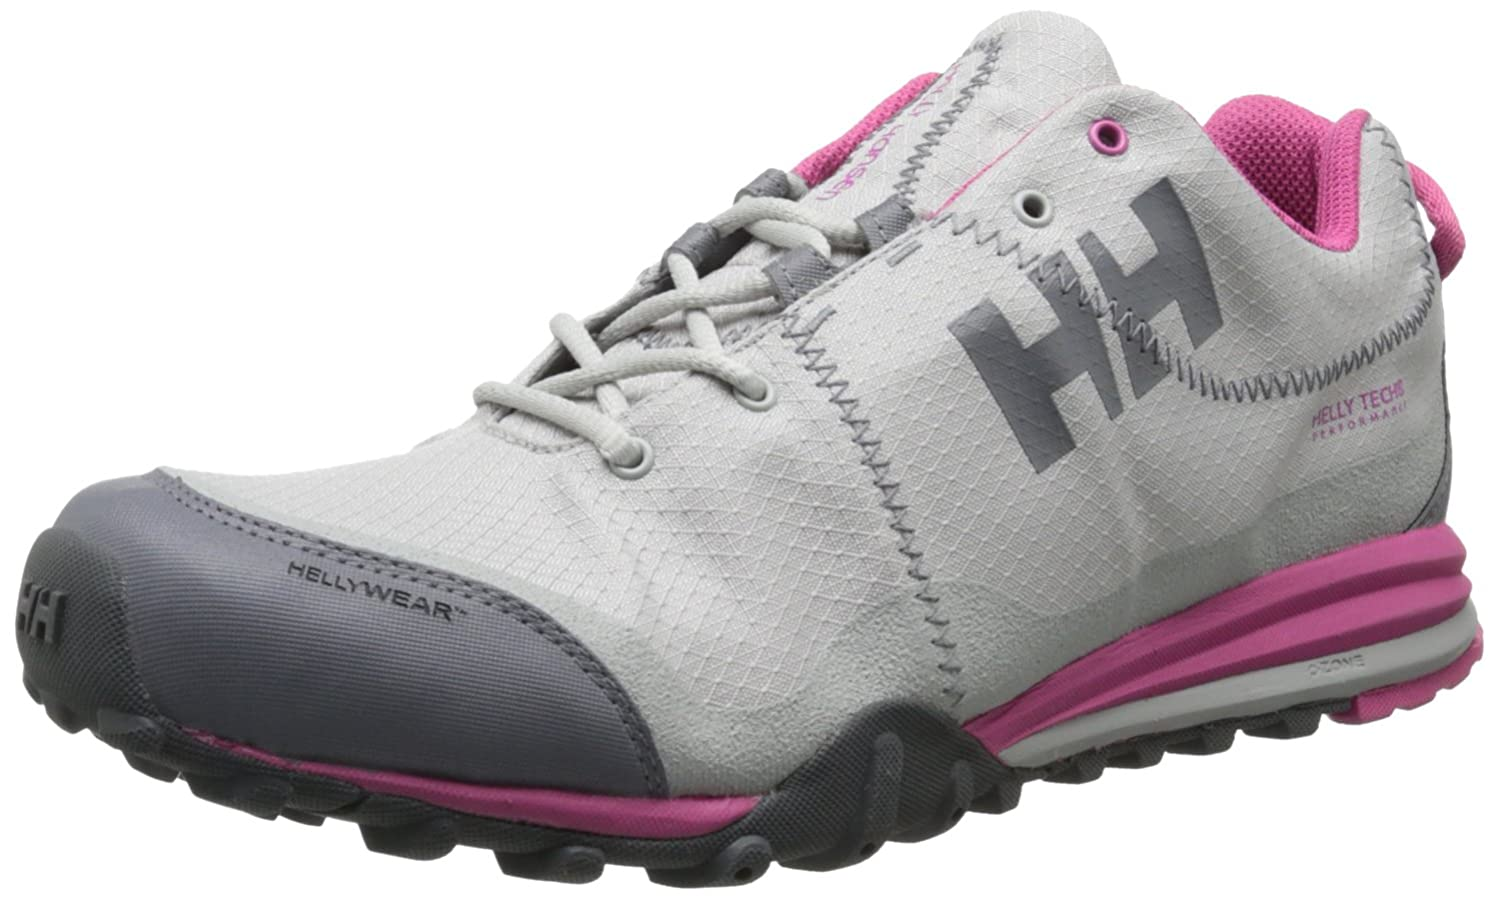 cea11b92492 Helly Hansen Rabbora Trail Low HTXP Waterproof Trail Running Shoes - 8:  Amazon.co.uk: Shoes & Bags